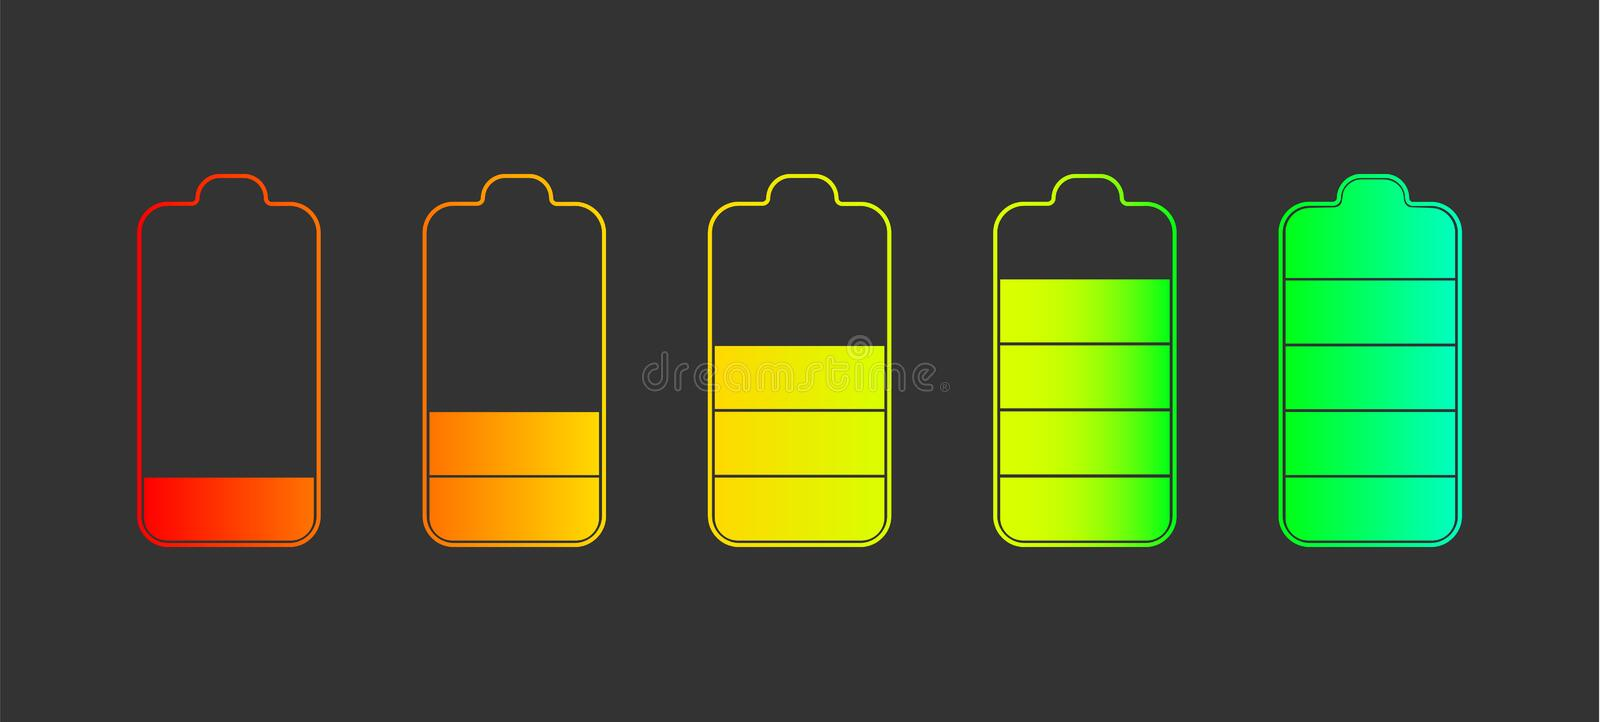 Outline Icon set of battery charge level indicators royalty free illustration